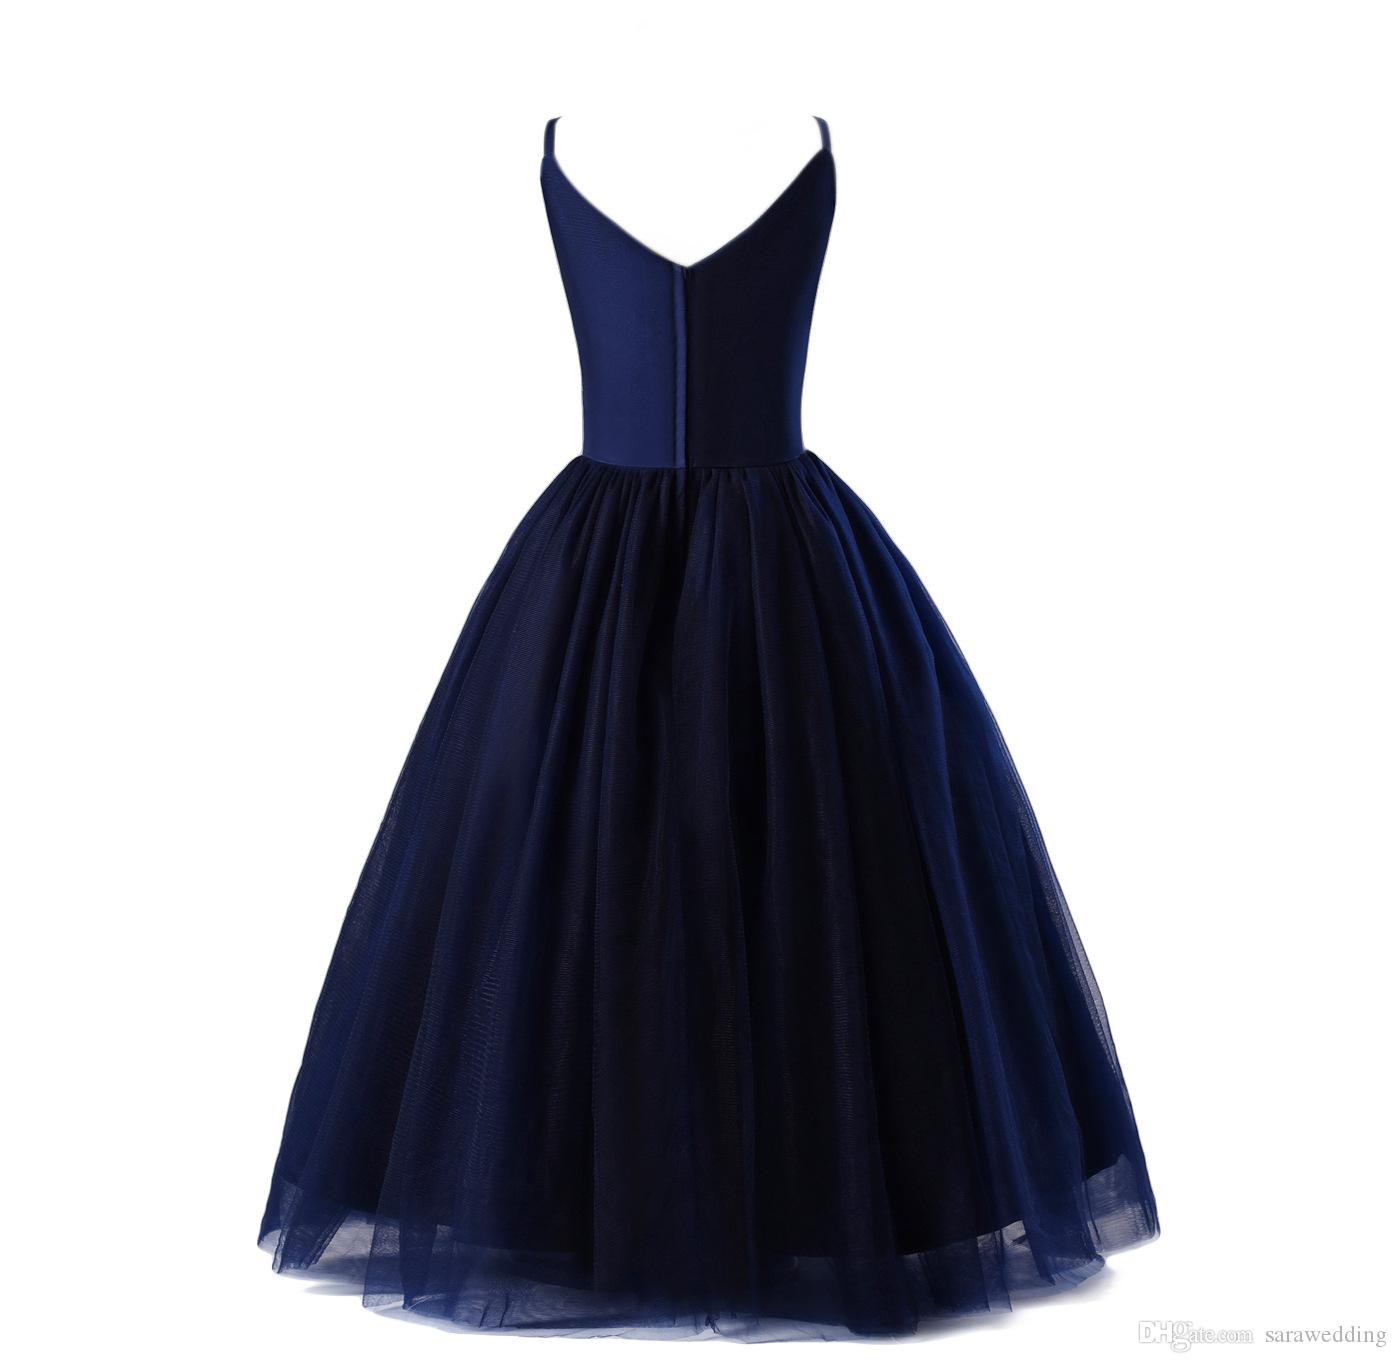 Spaghetti V Neck Tulle Flower Girl Dresses Navy Blue 2019 New Ball Gown Girls Party Dresses Kids Evening Gowns